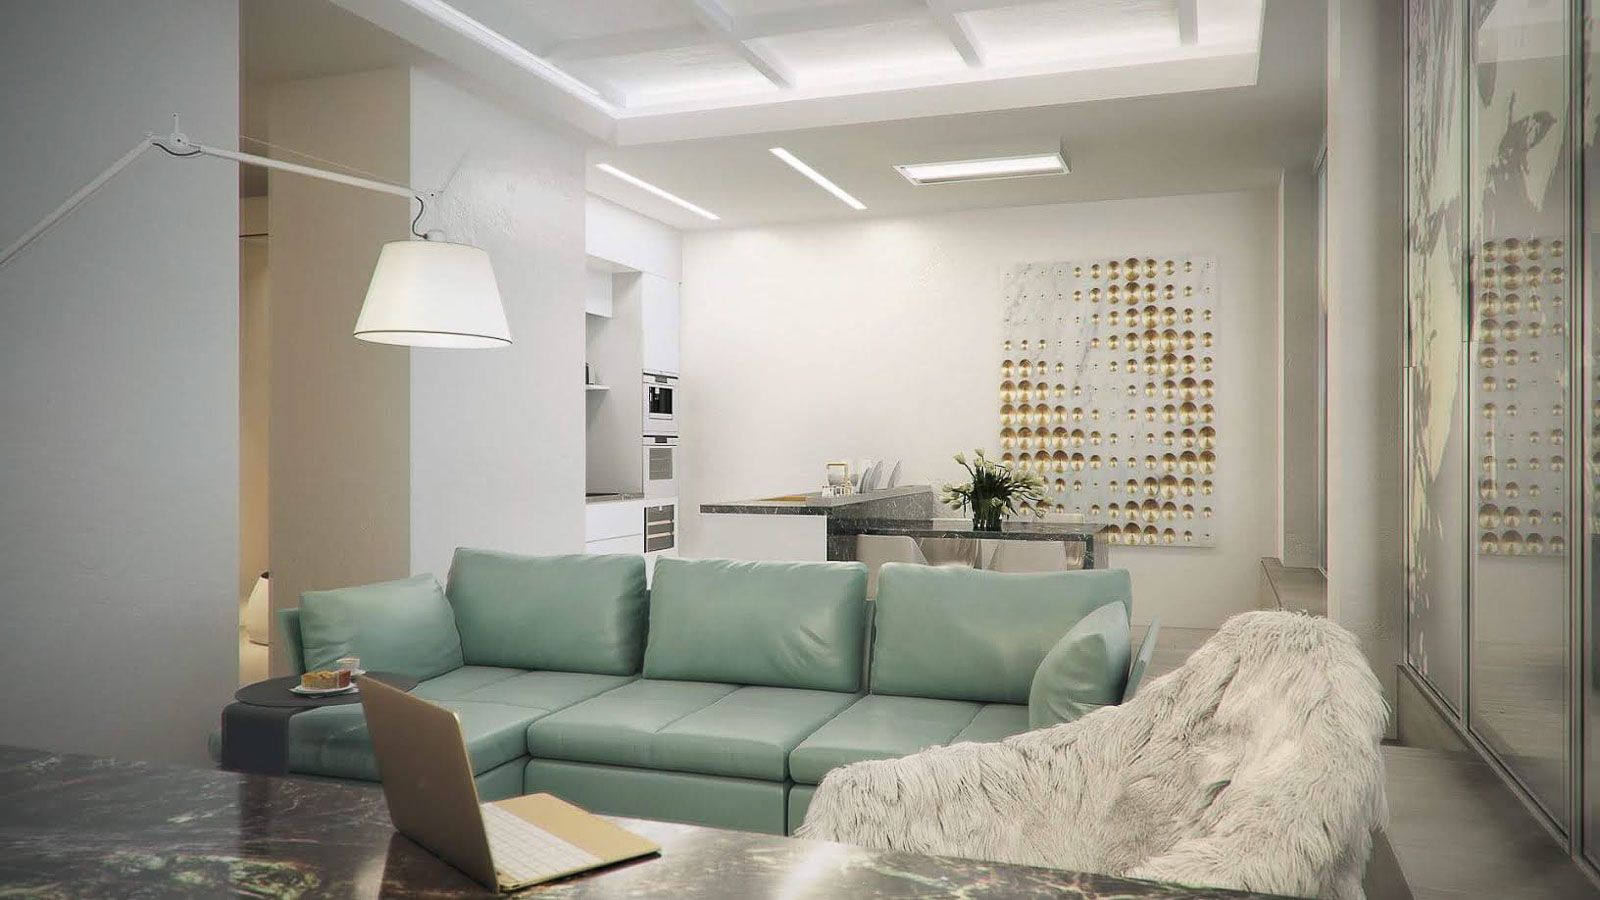 Living room with green sofa